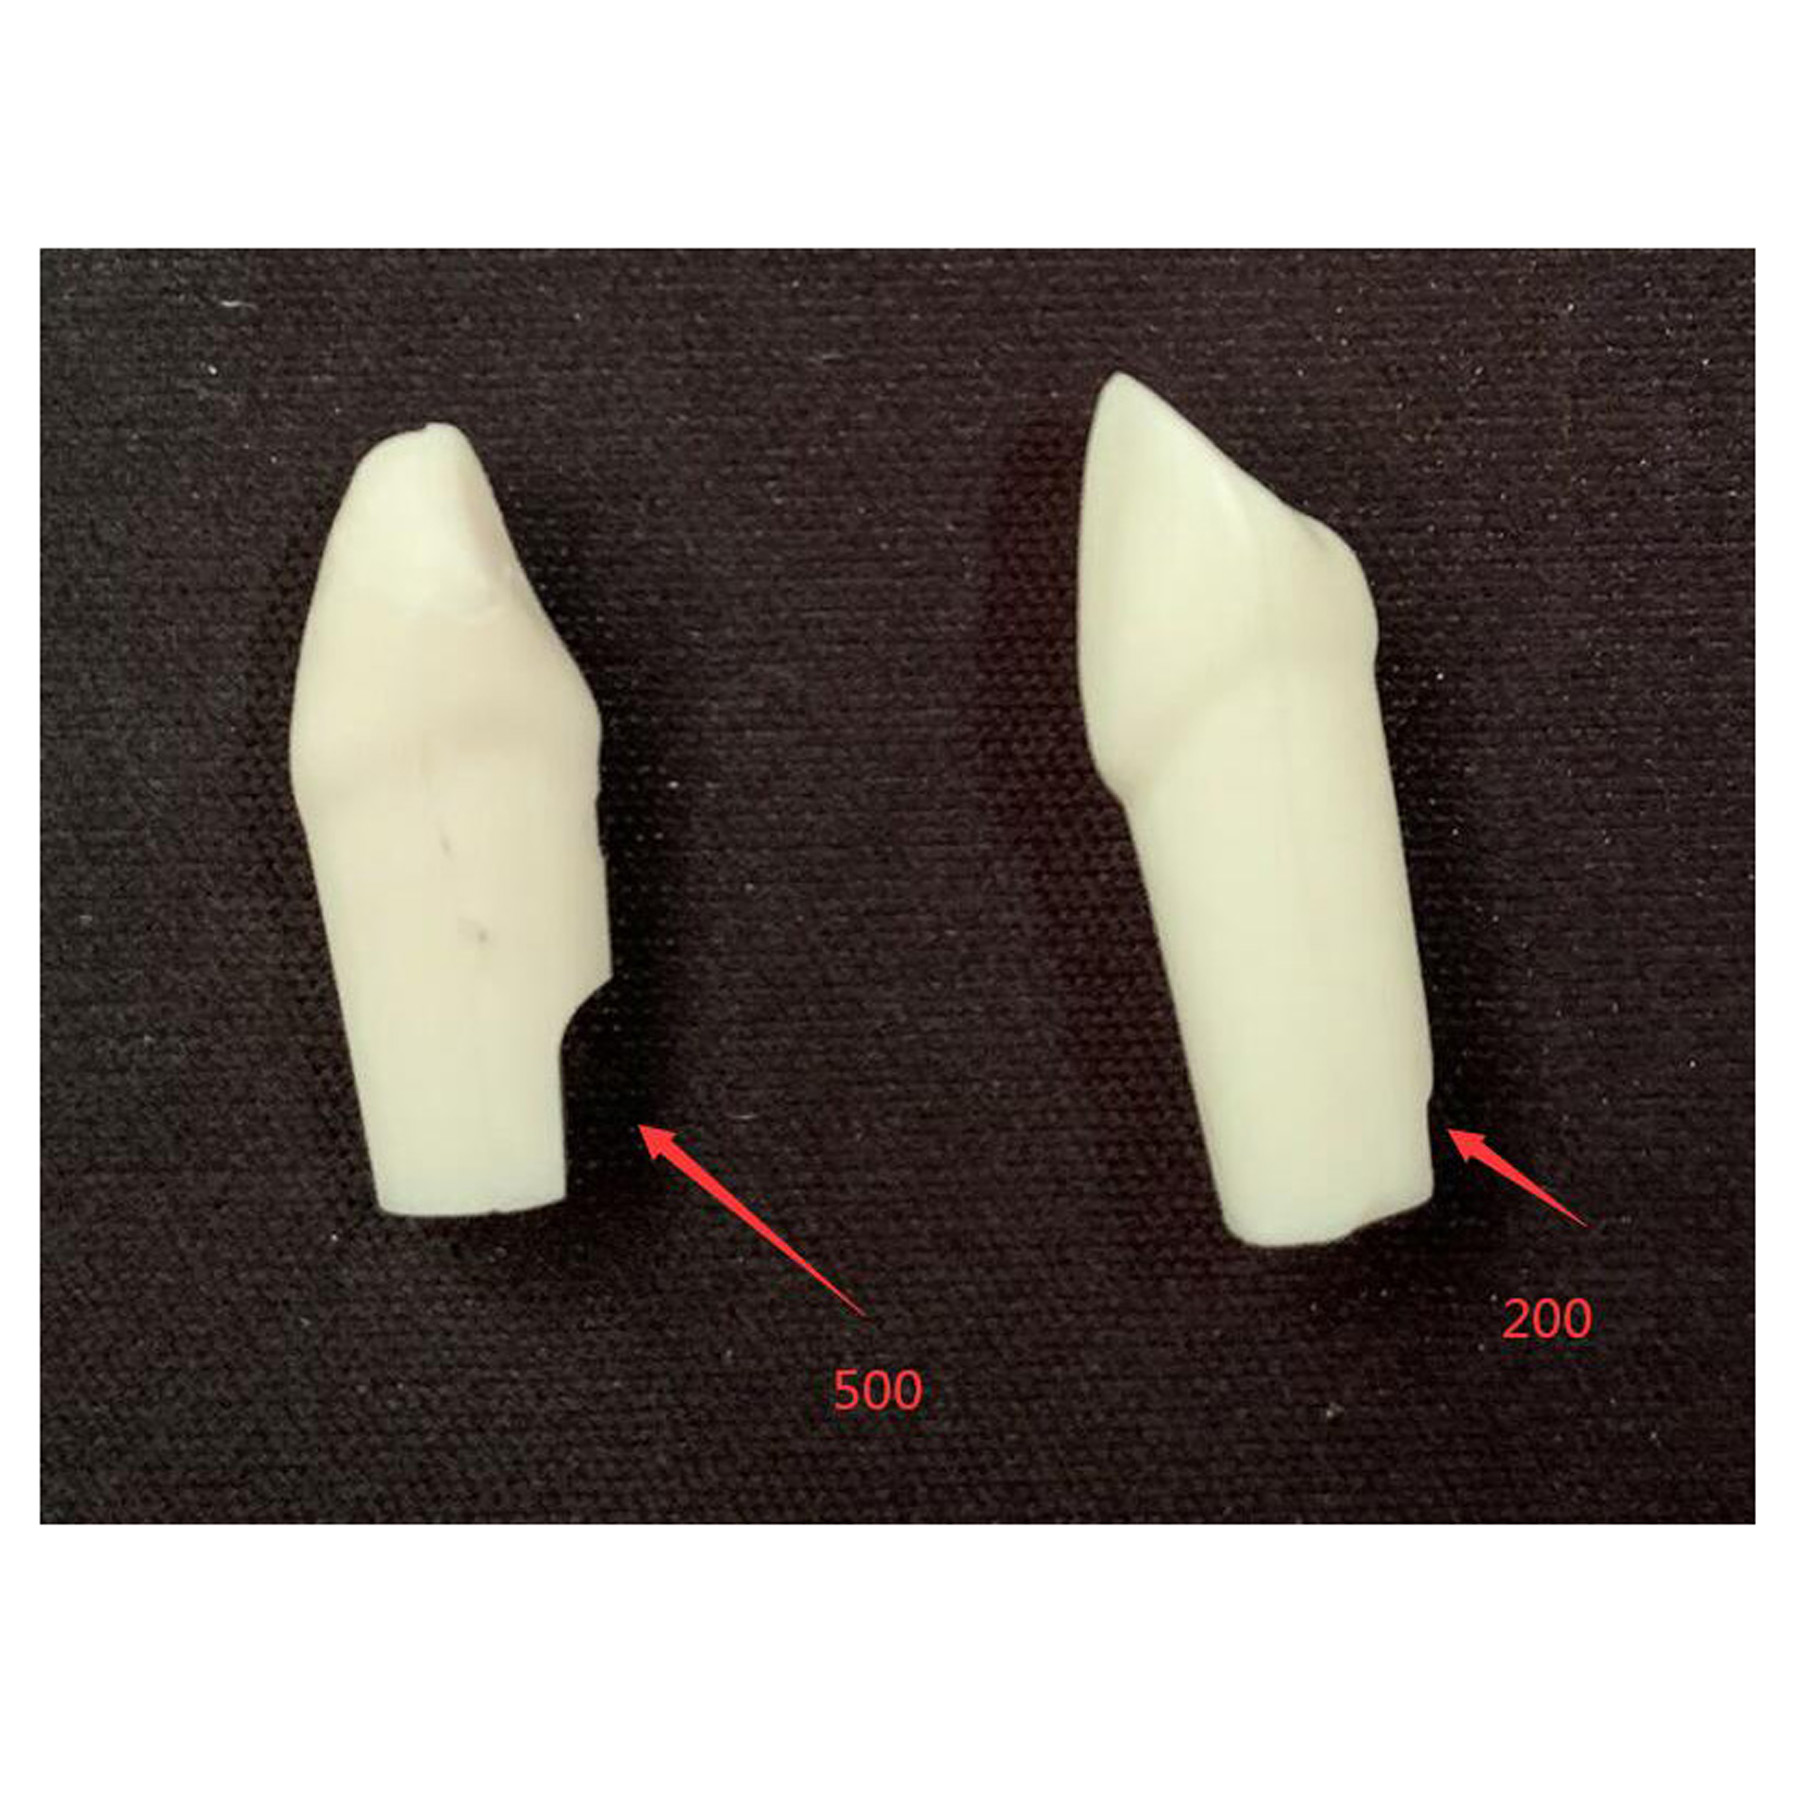 TM-D7 Nissin 200 or Nissin 500 teeth with straight root